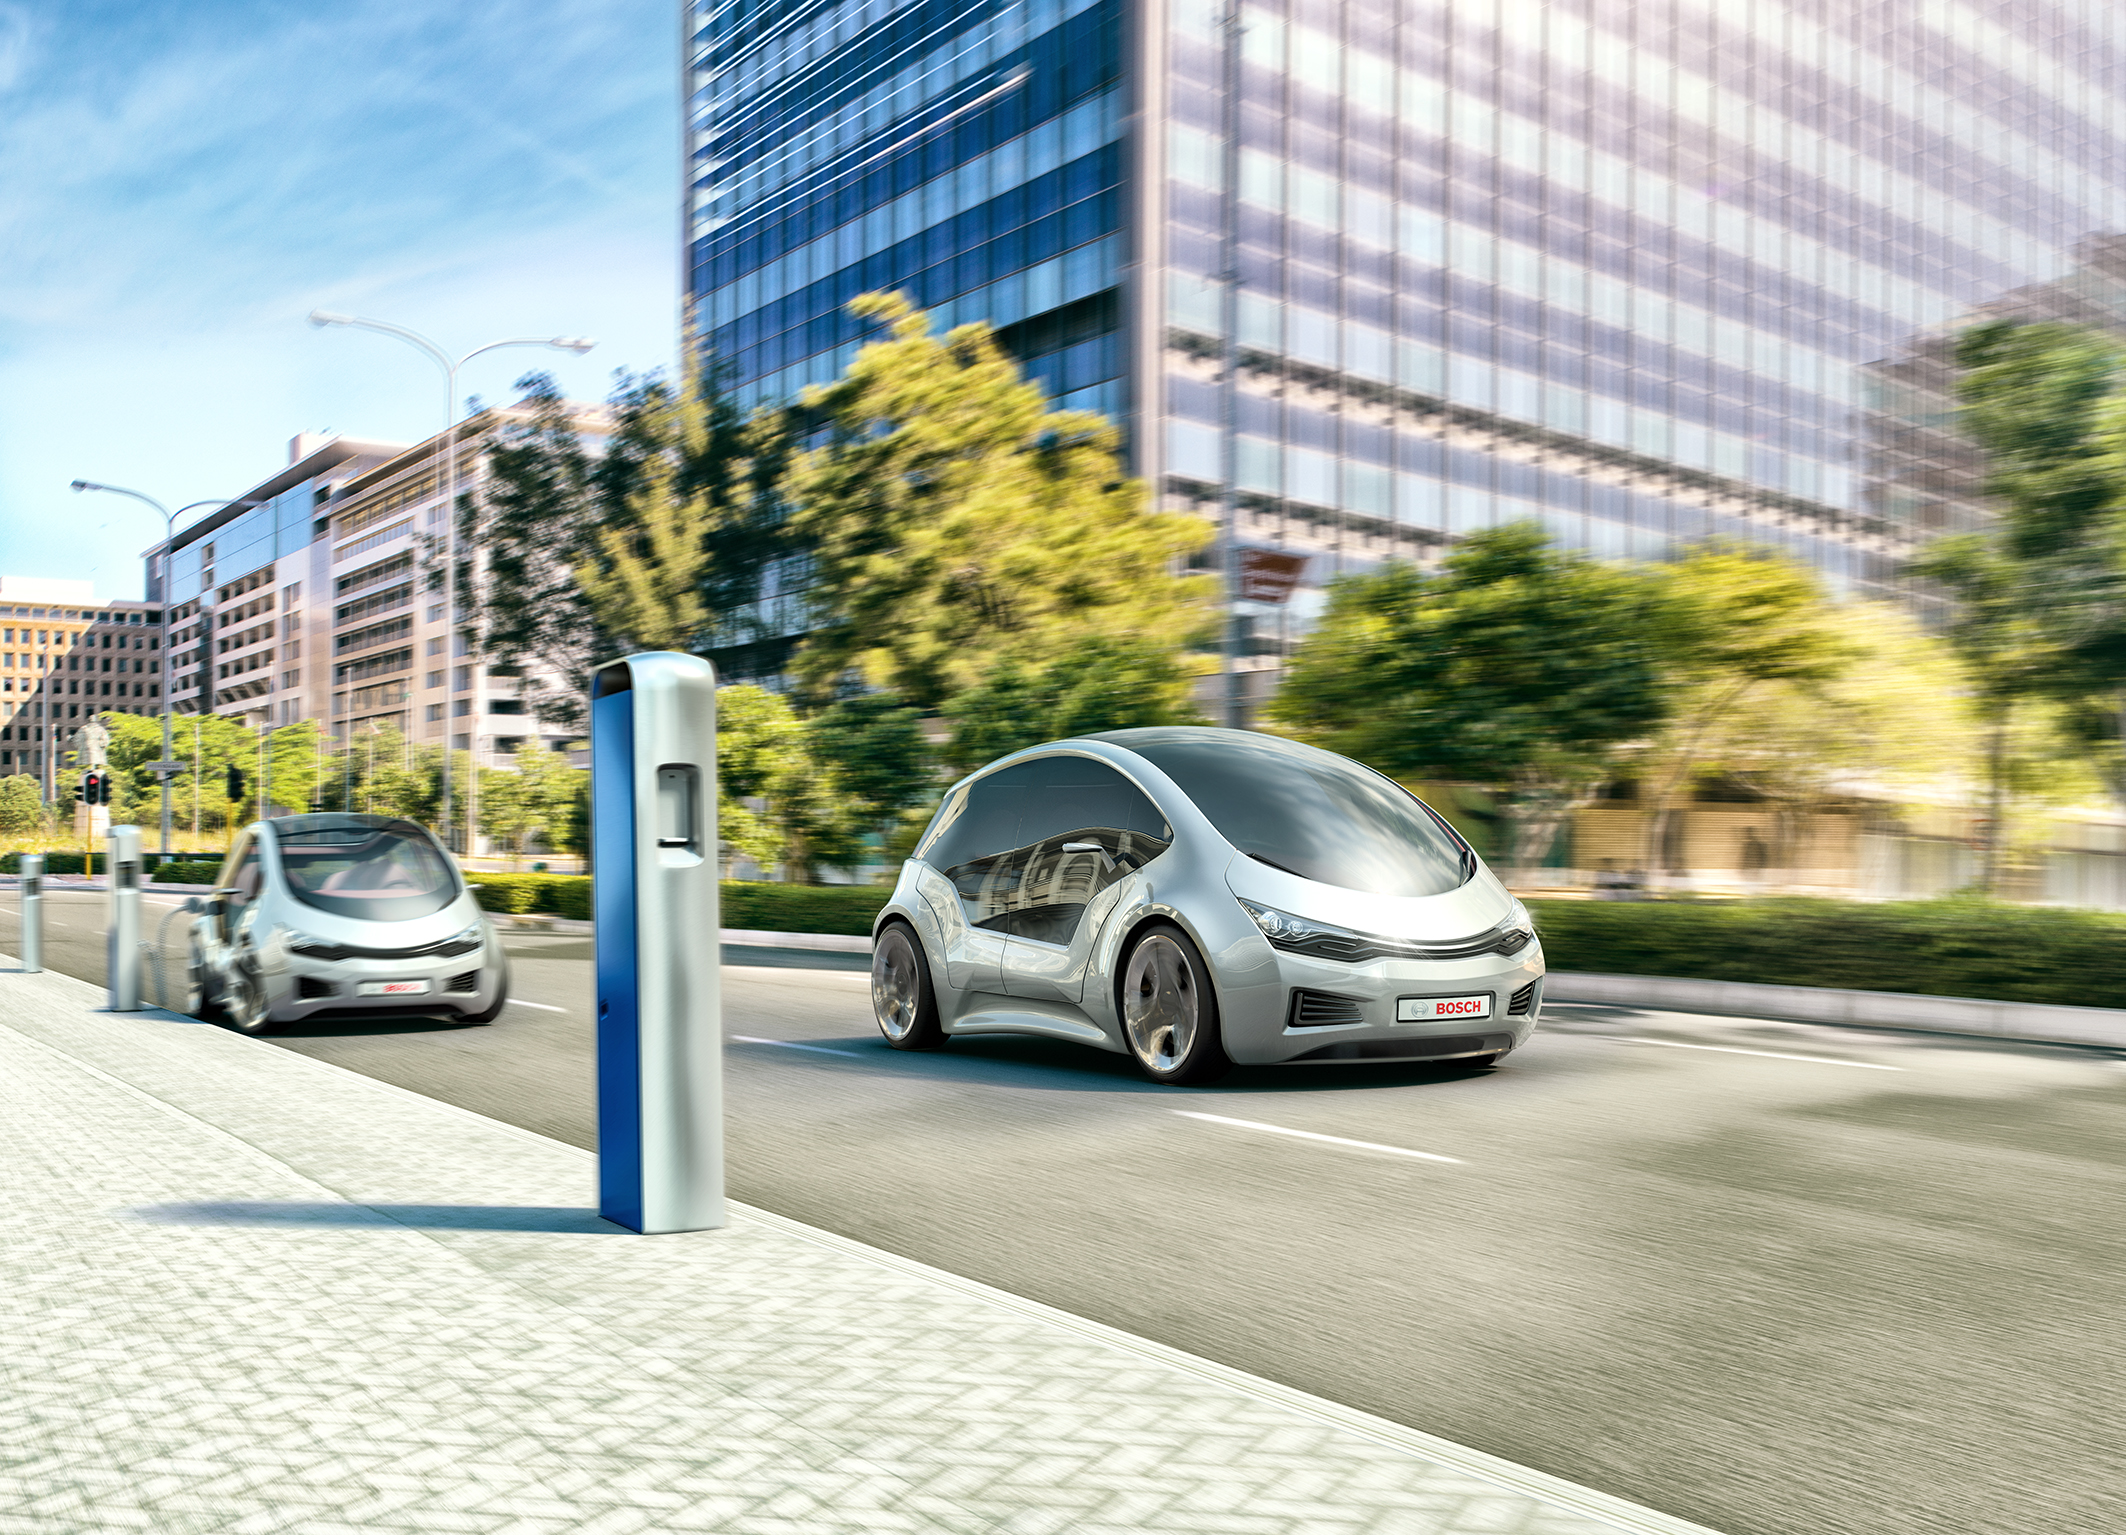 Electromobility has enormous potential